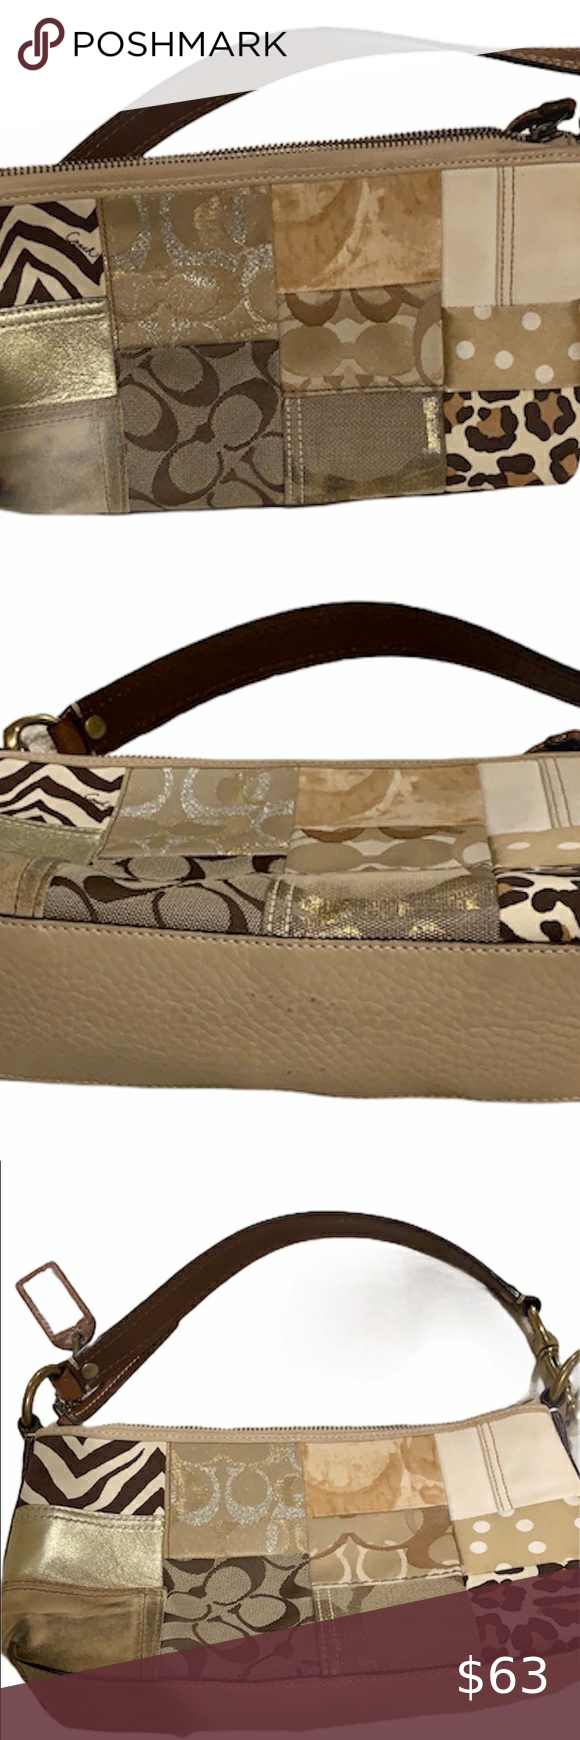 Beautiful coach purse in fun design, style 10813! Beautiful coach purse in fun design, style 10813! Used but still beautiful. Size is 11x6.5x2.5! The suede parts seen in the pics show some wear but overall still a lovely bag. Smoke free pet free home. Ask any questions! Ask me to bundle this listing with other listings for a discount! Coach Bags